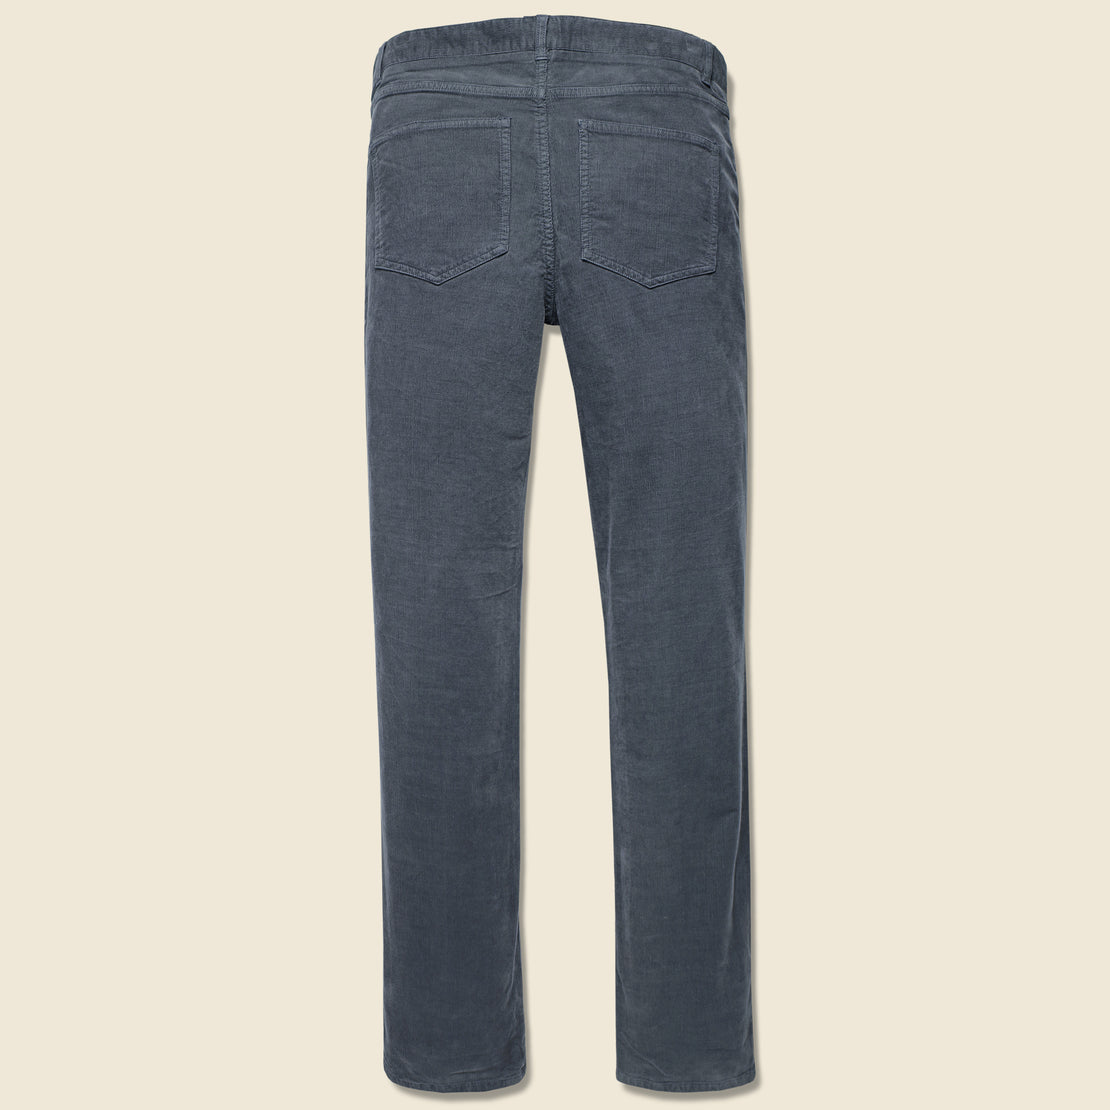 Stretch Corduroy Pant - Navy